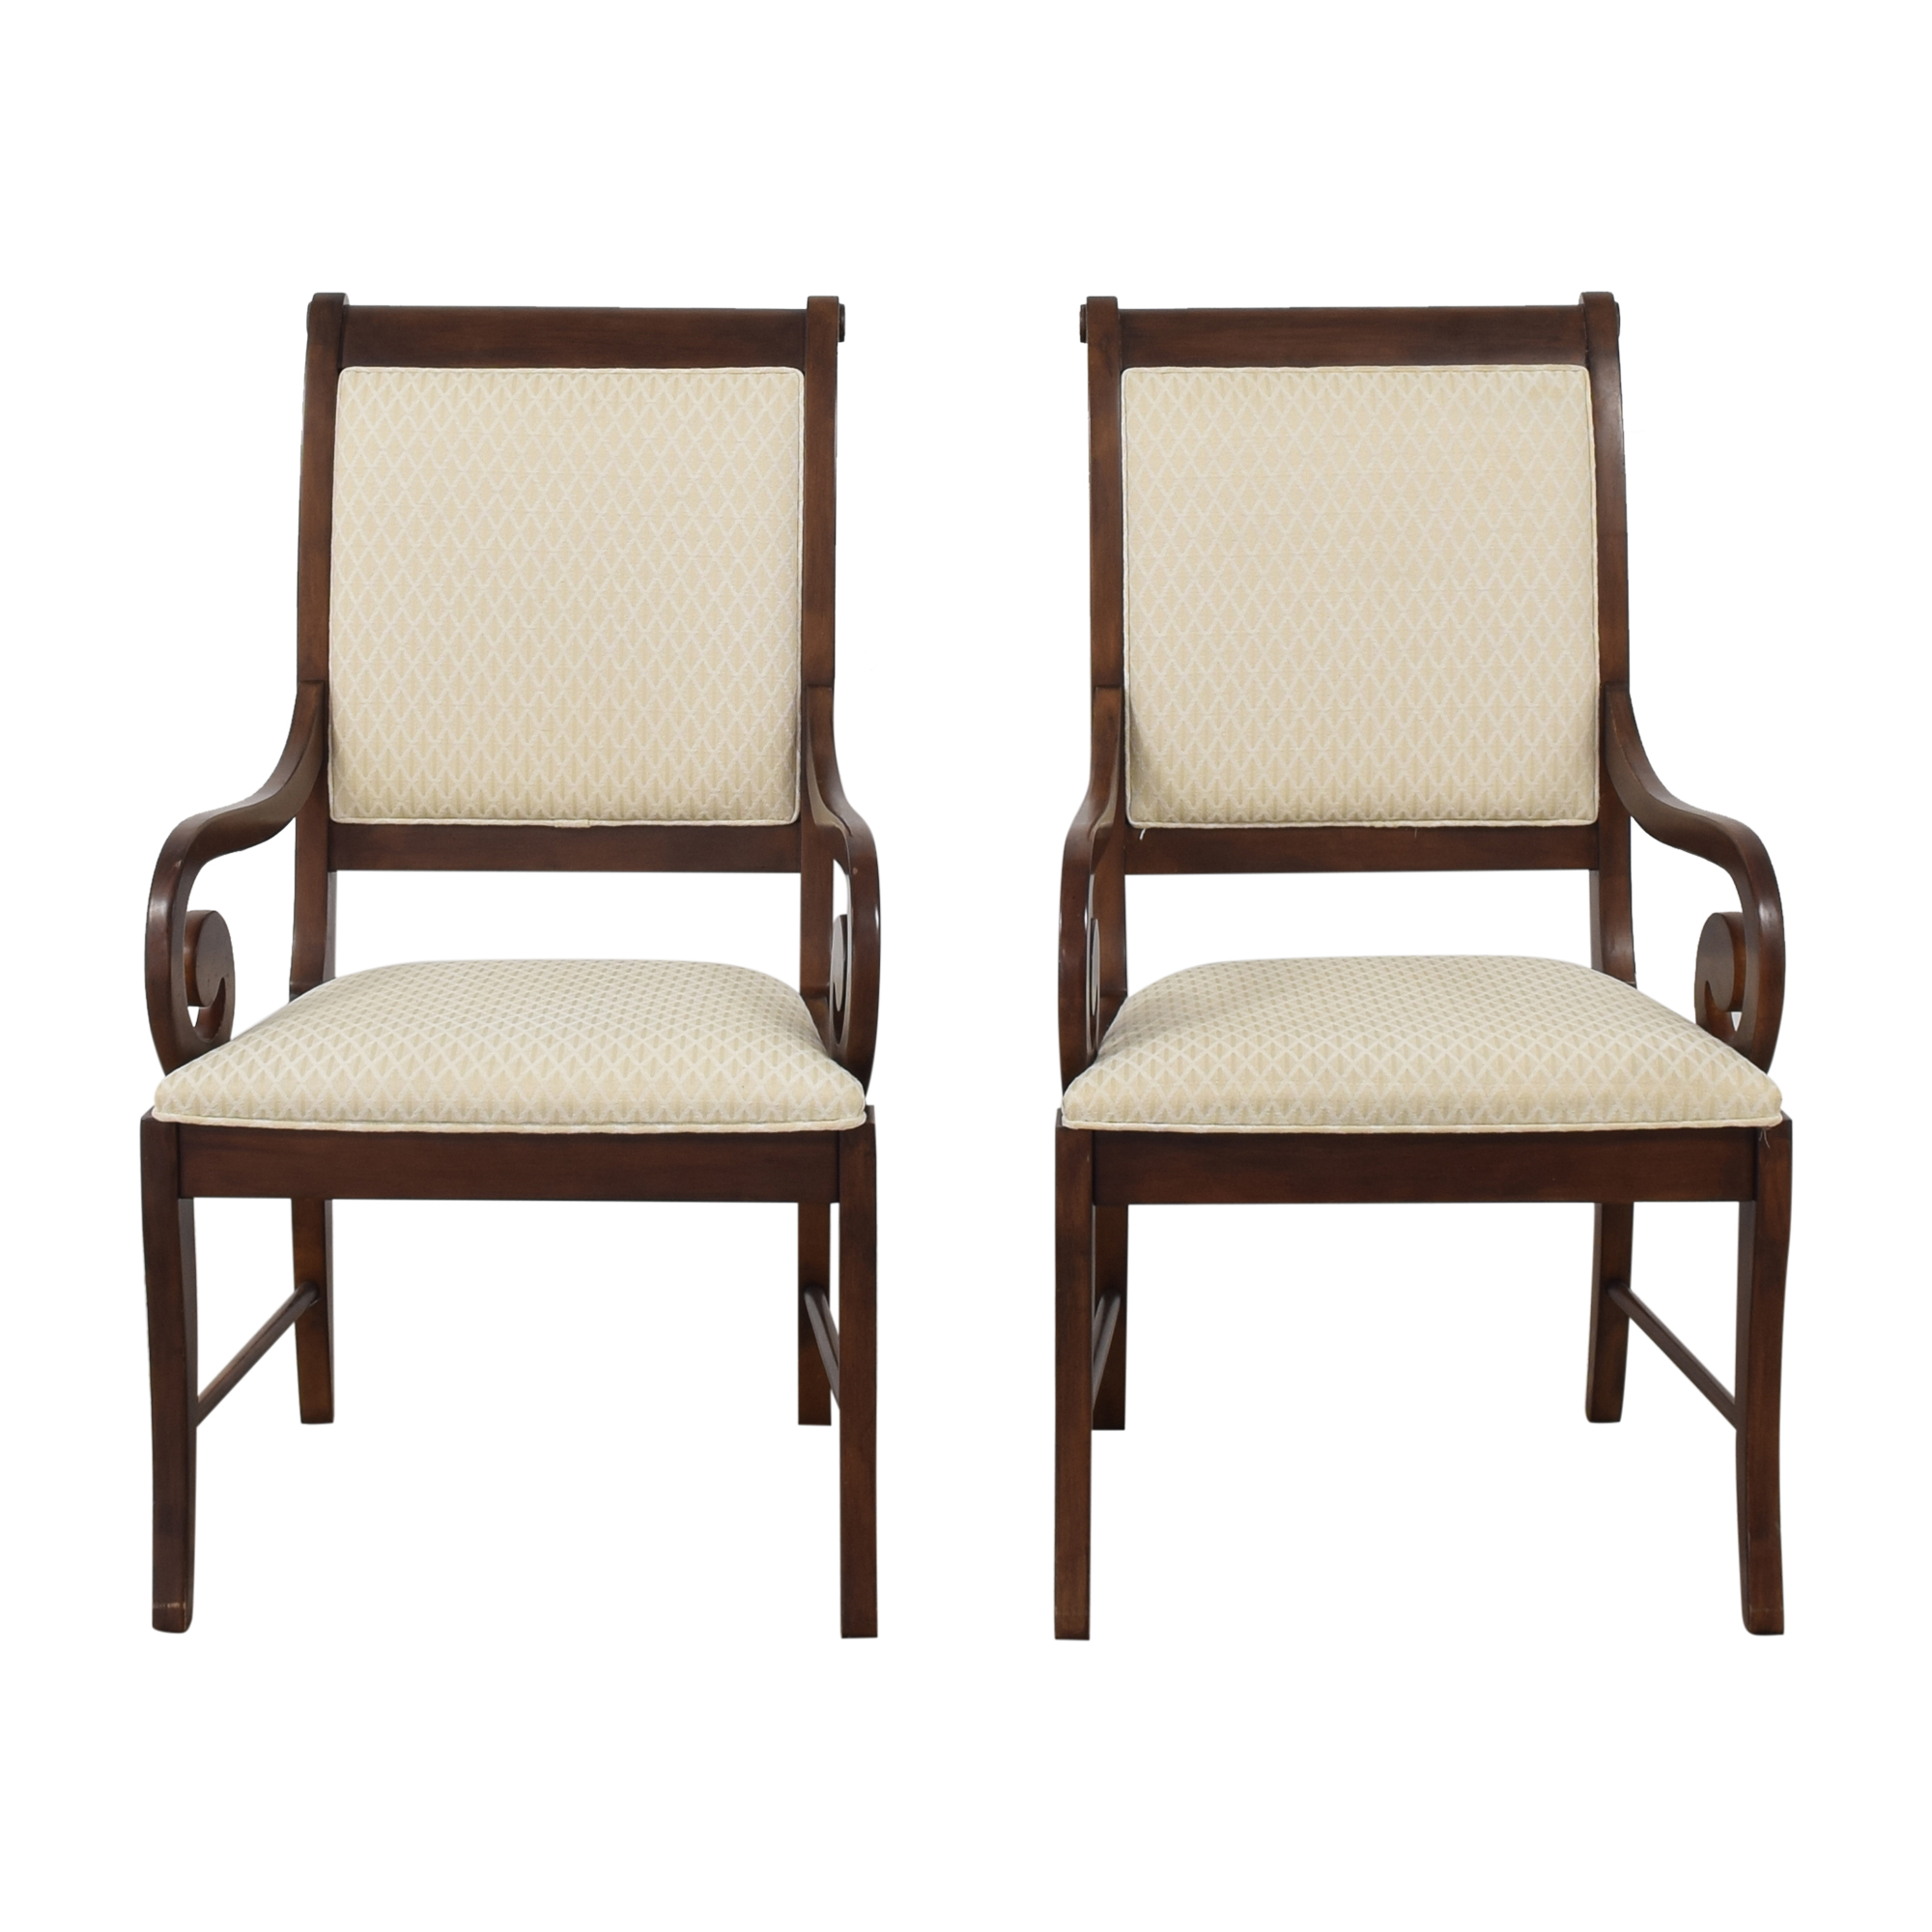 Broyhill Furniture Broyhill Scroll Arm Dining Chairs discount